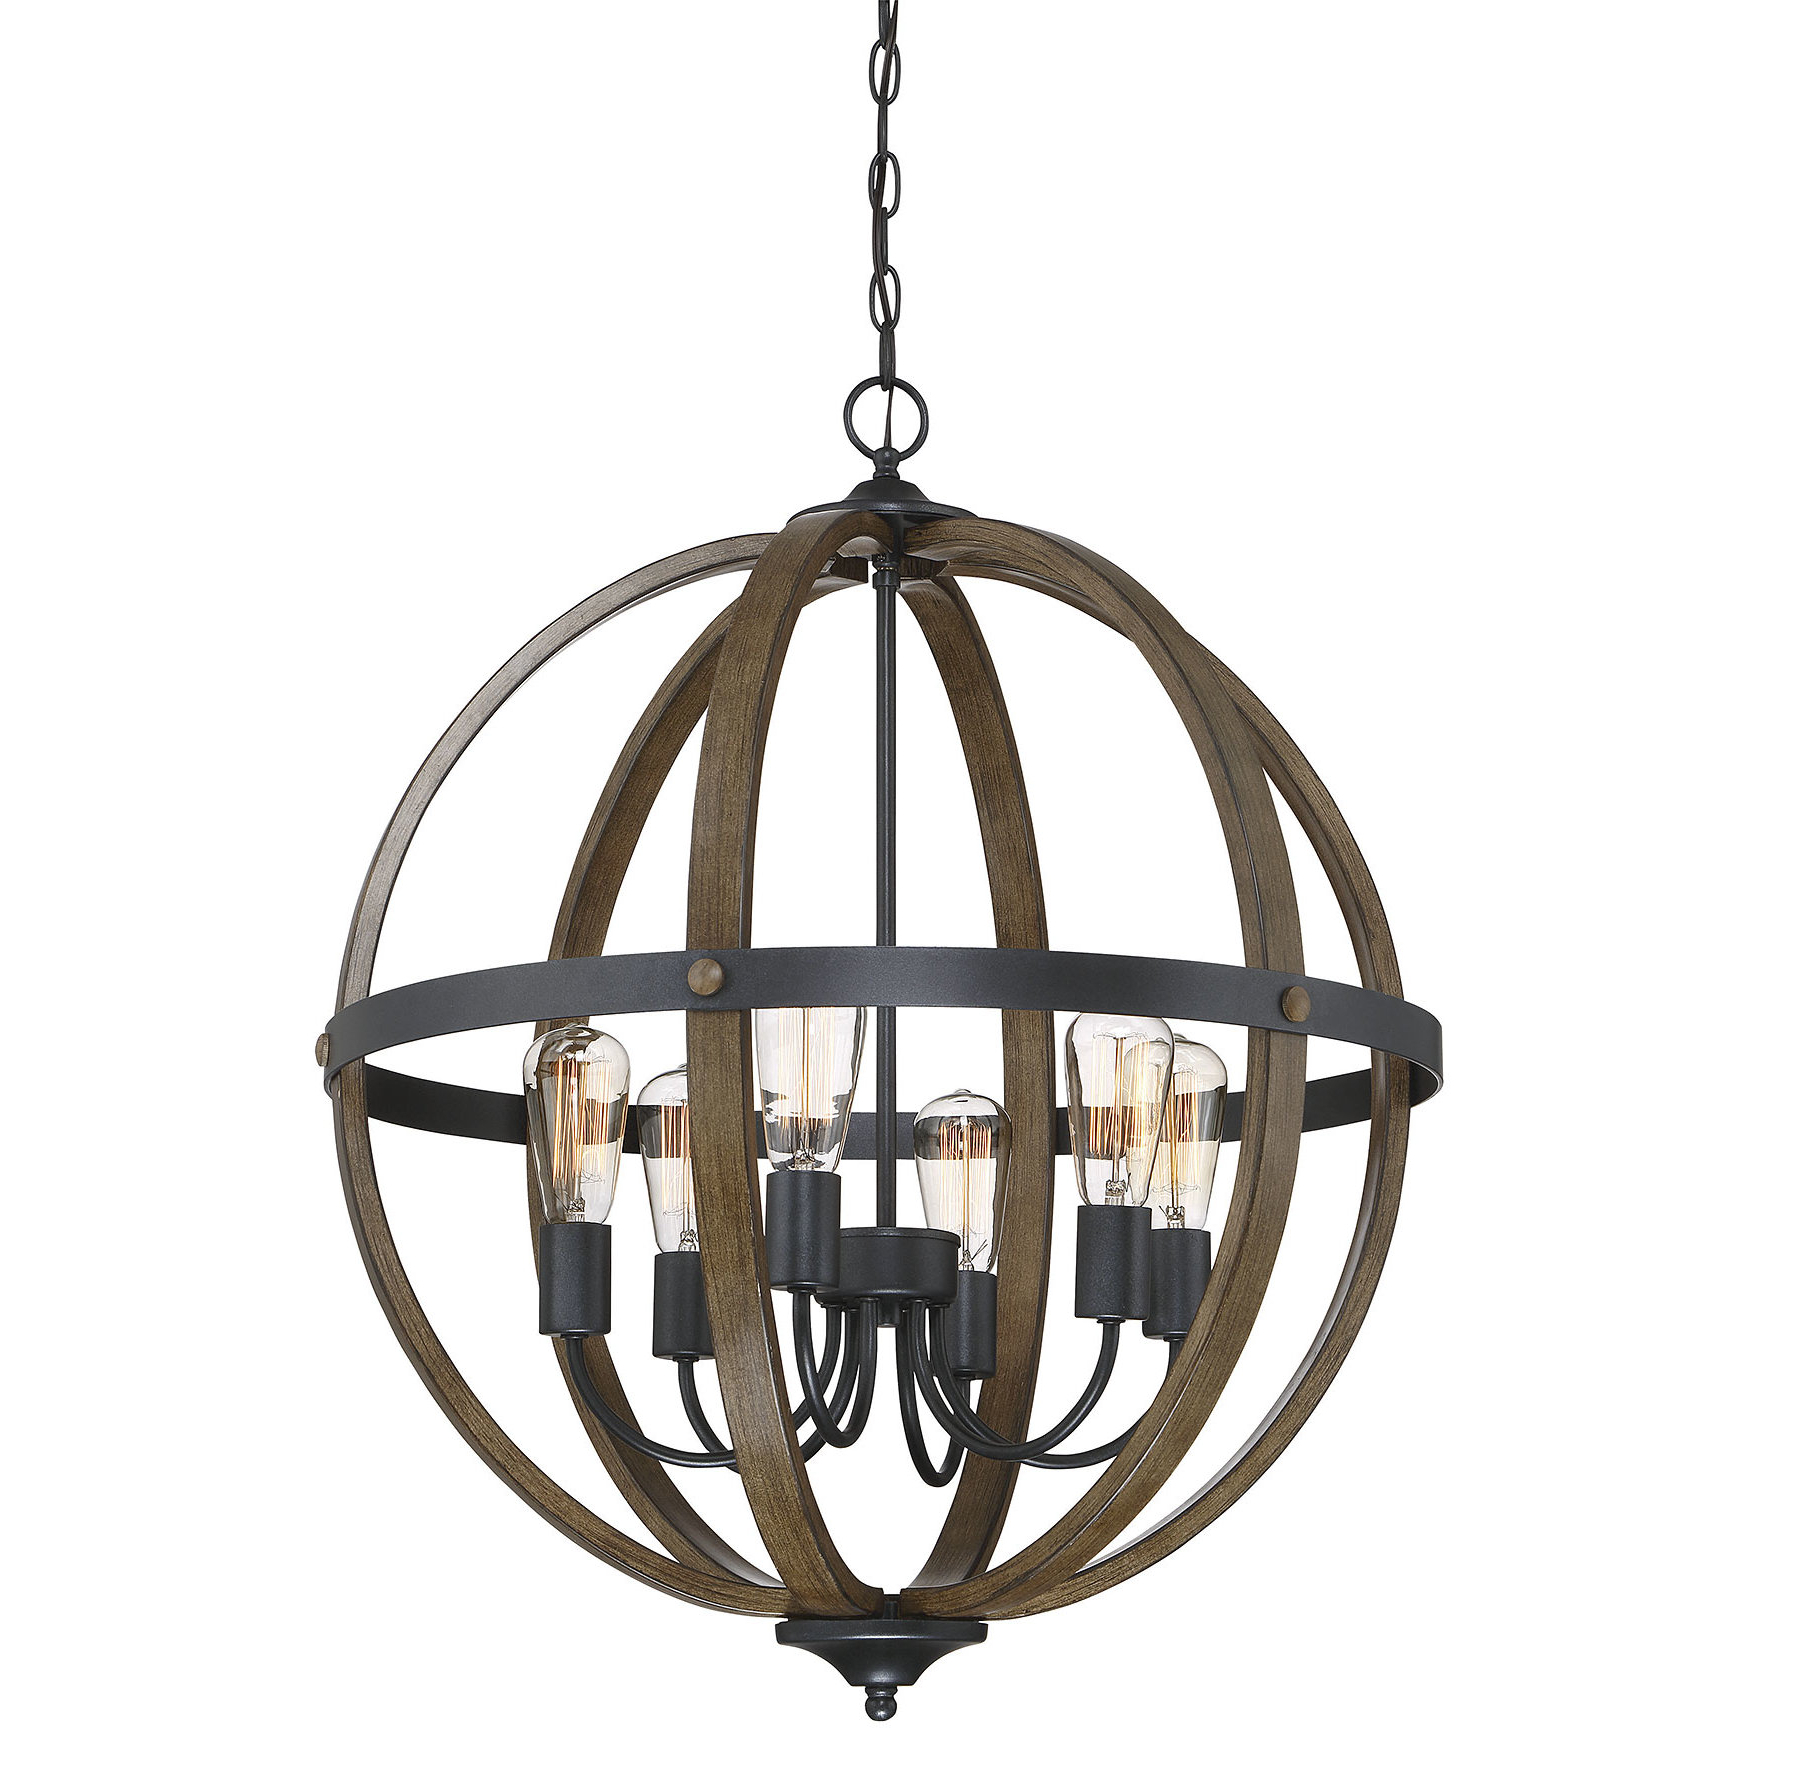 Hendry 4 Light Globe Chandeliers Within Famous Farmhouse & Rustic Globe Chandeliers (View 14 of 25)